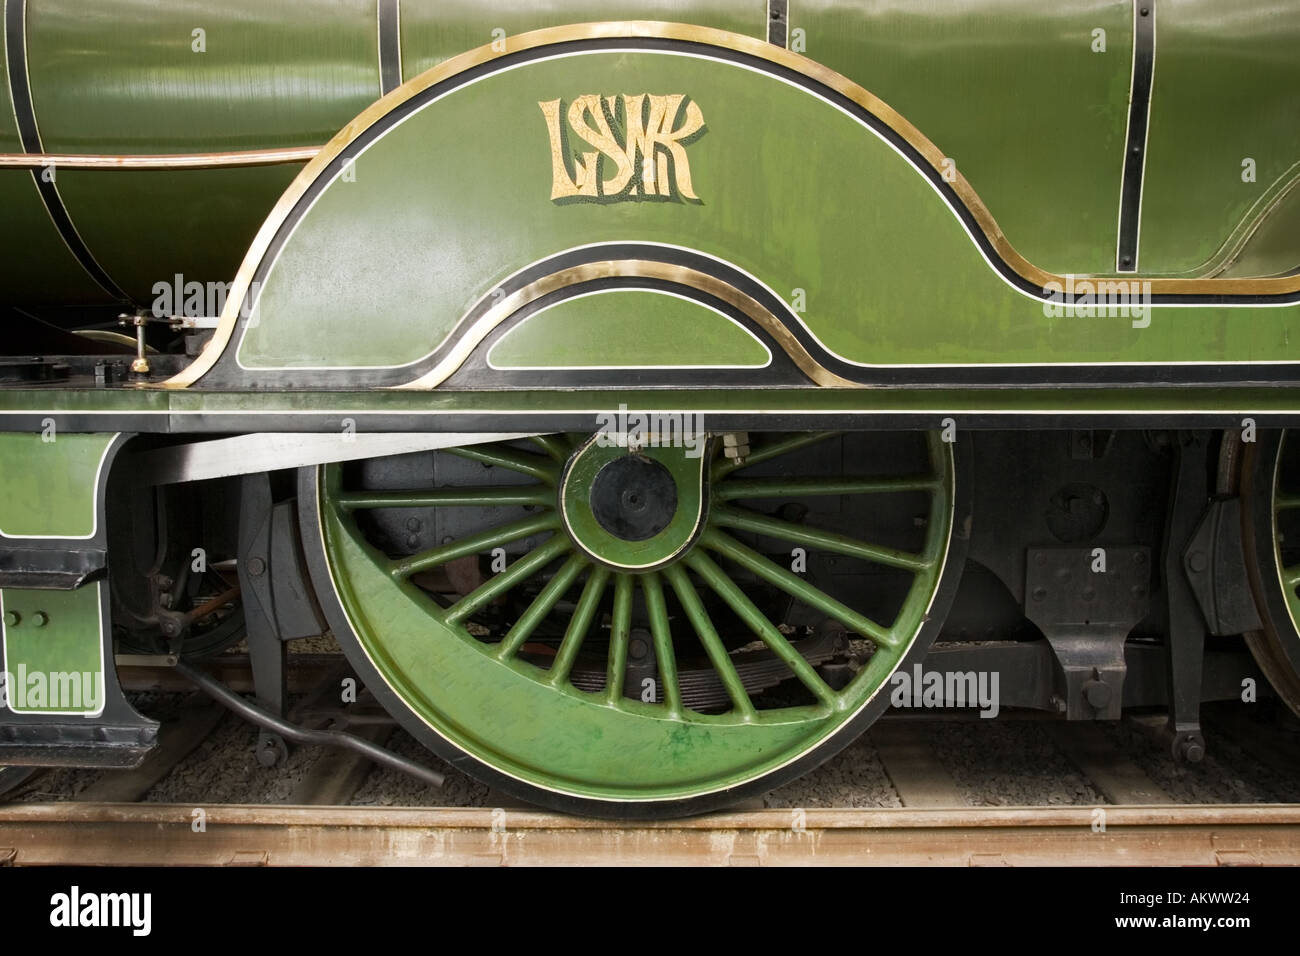 Detail of wheel and cover on an L & SWR Adams 563 locomotive - Stock Image